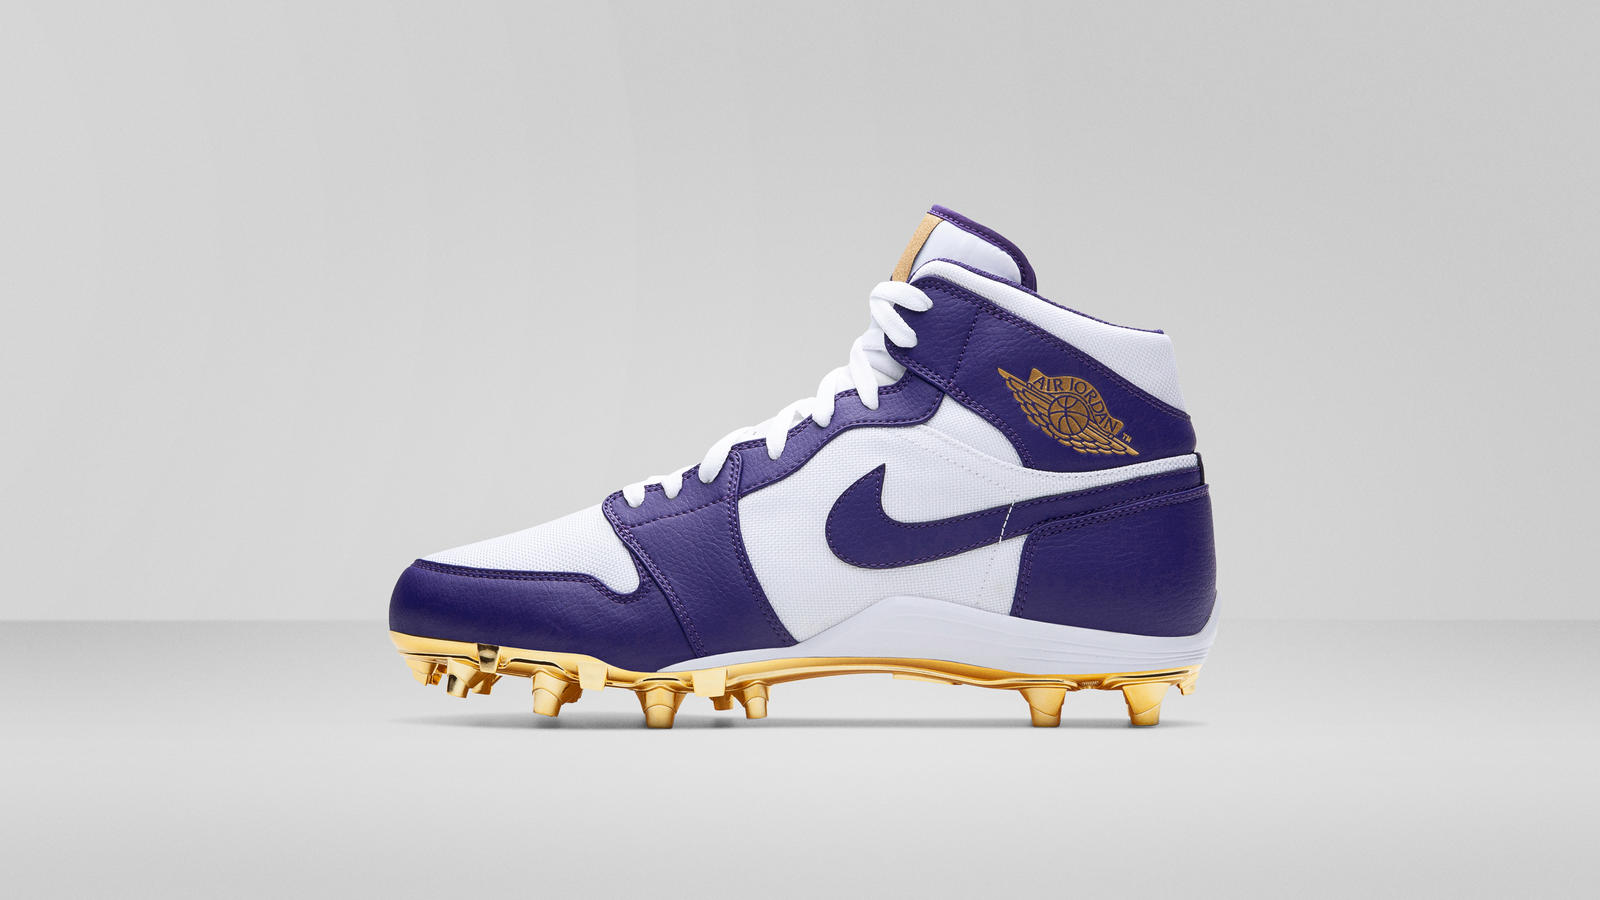 Jordan Brand Cleats NFL Opening Week 2019 0